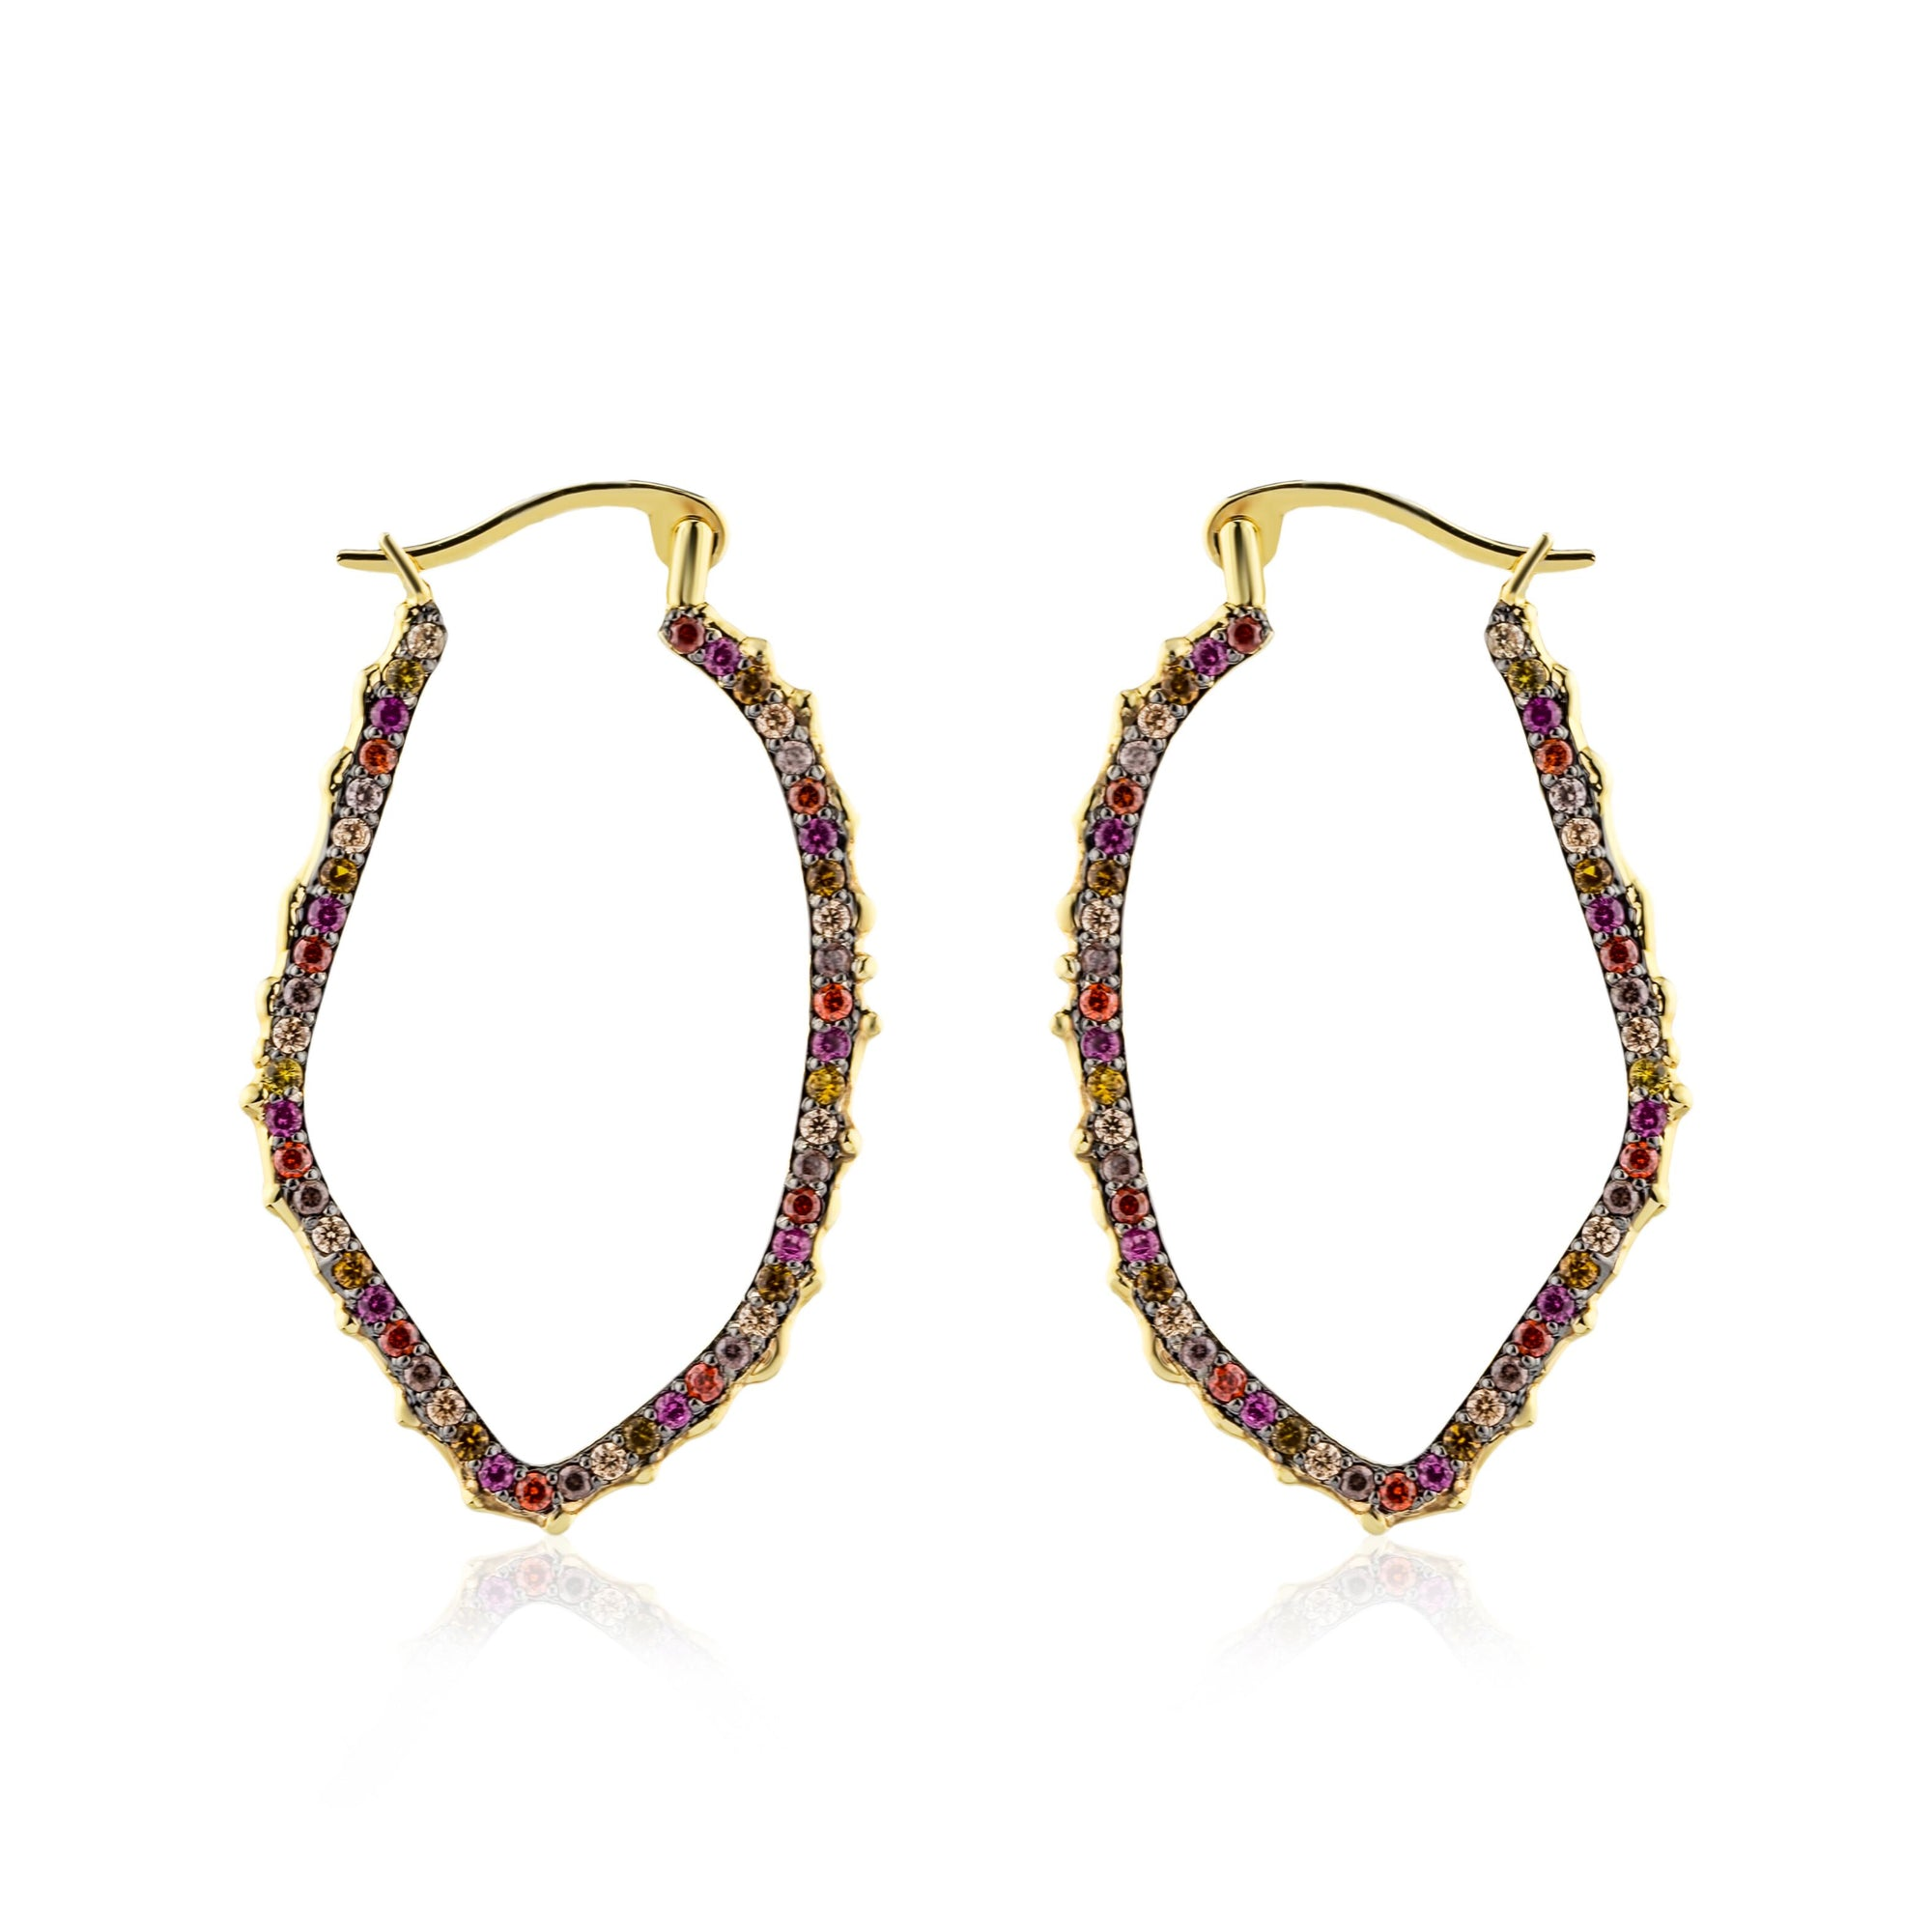 Agate Band Mini Hoop Earrings